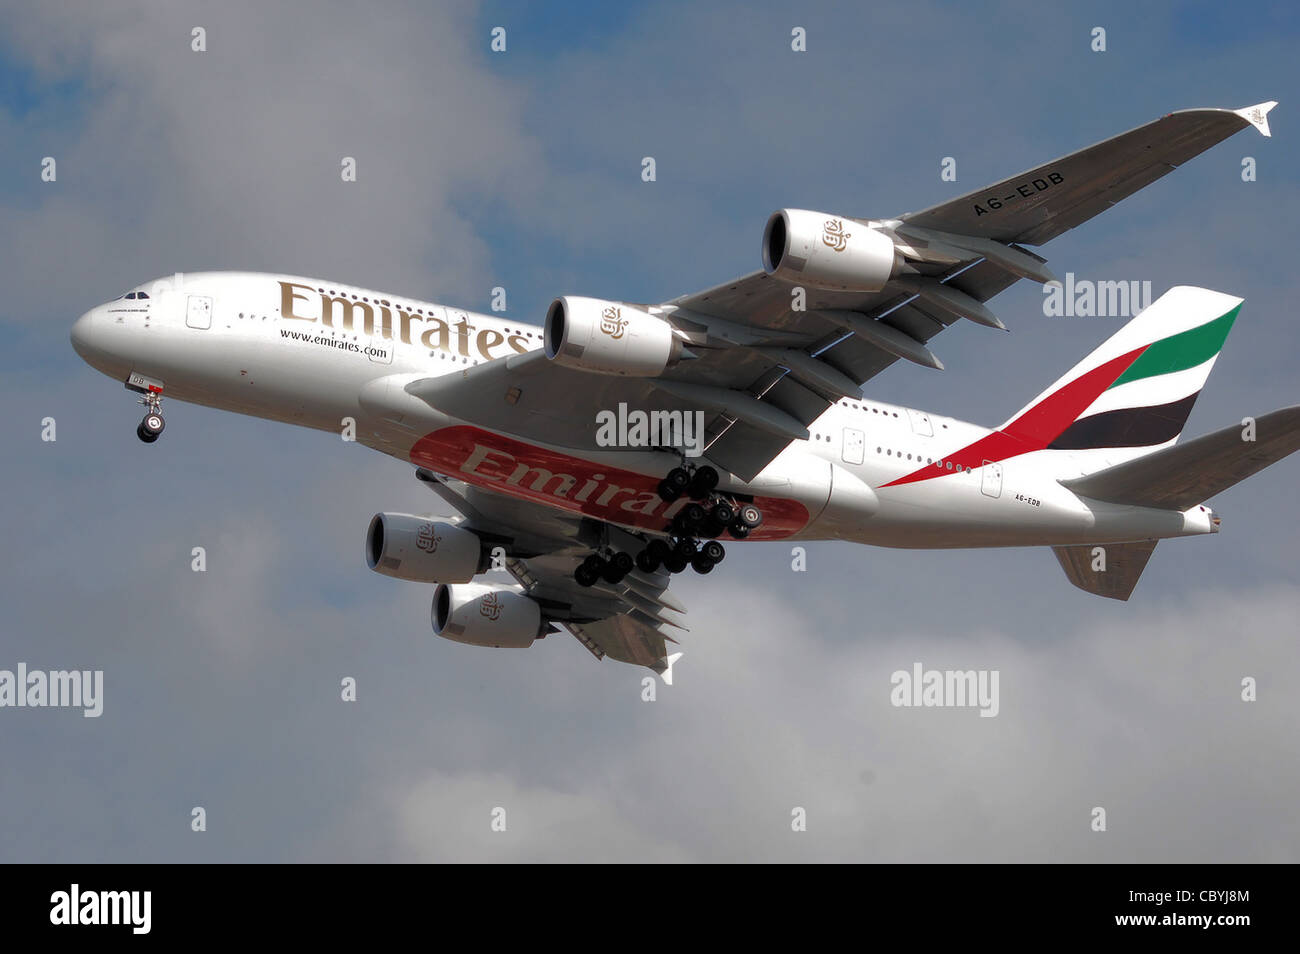 Emirates Airbus A380-800 (A6-EDB) lands at London Heathrow Airport, England. - Stock Image